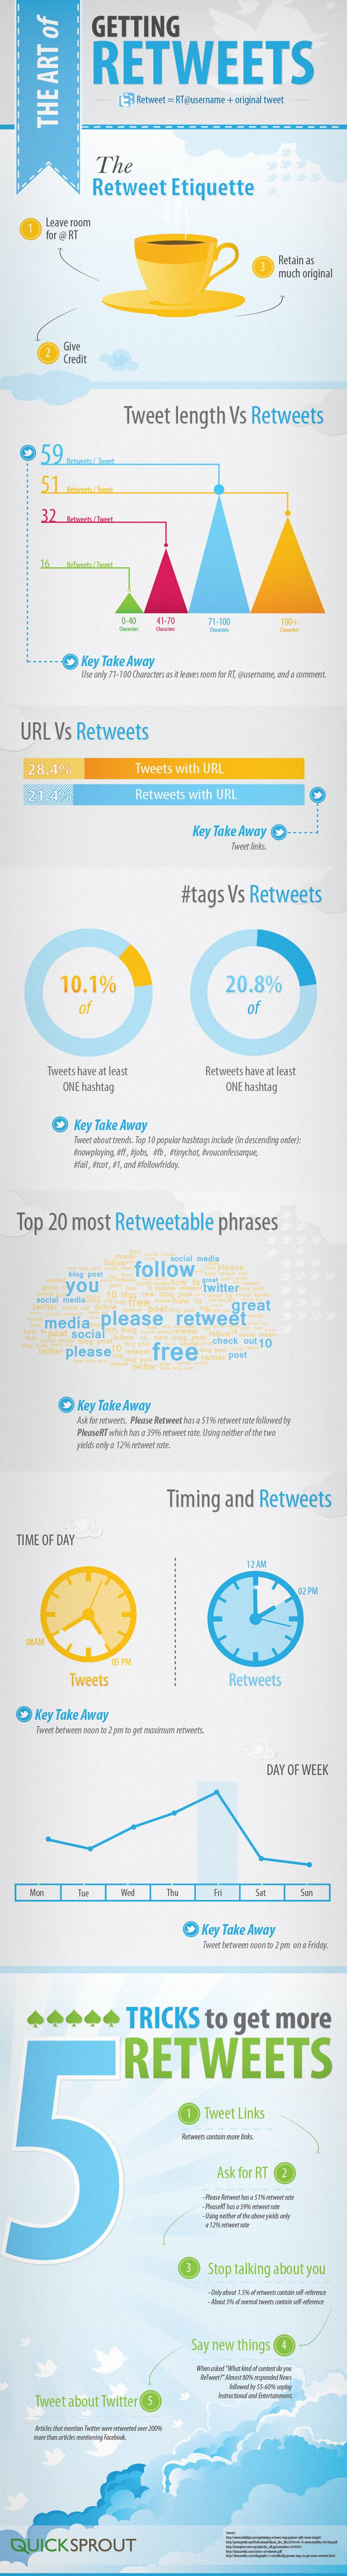 How to Get More Retweets Infographic